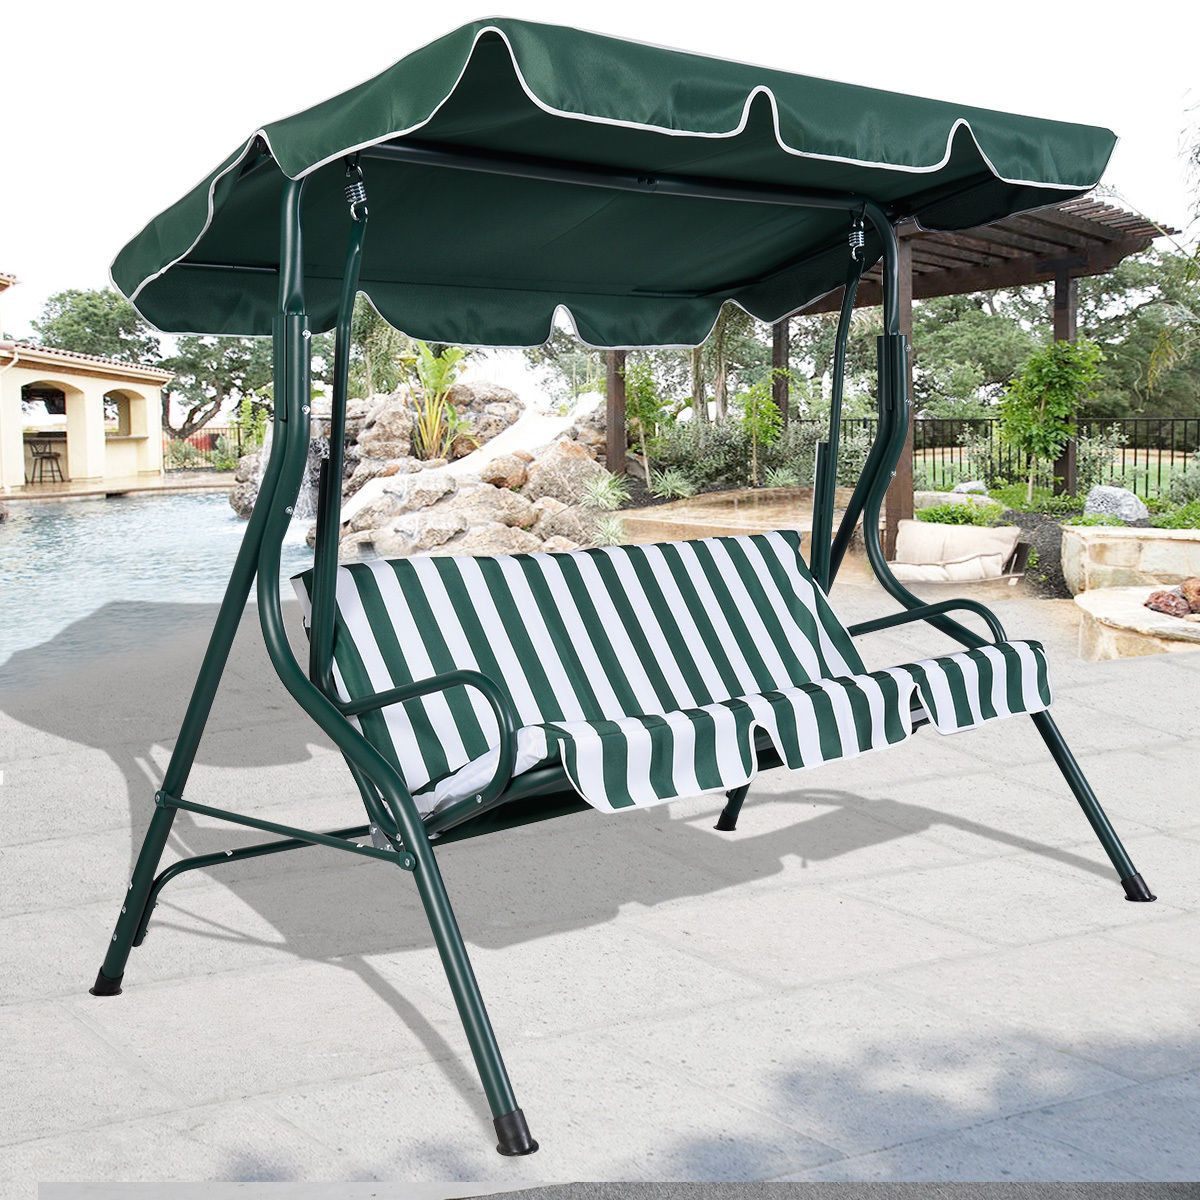 Outdoor Patio Awning Swing Set 2 Seater Green White